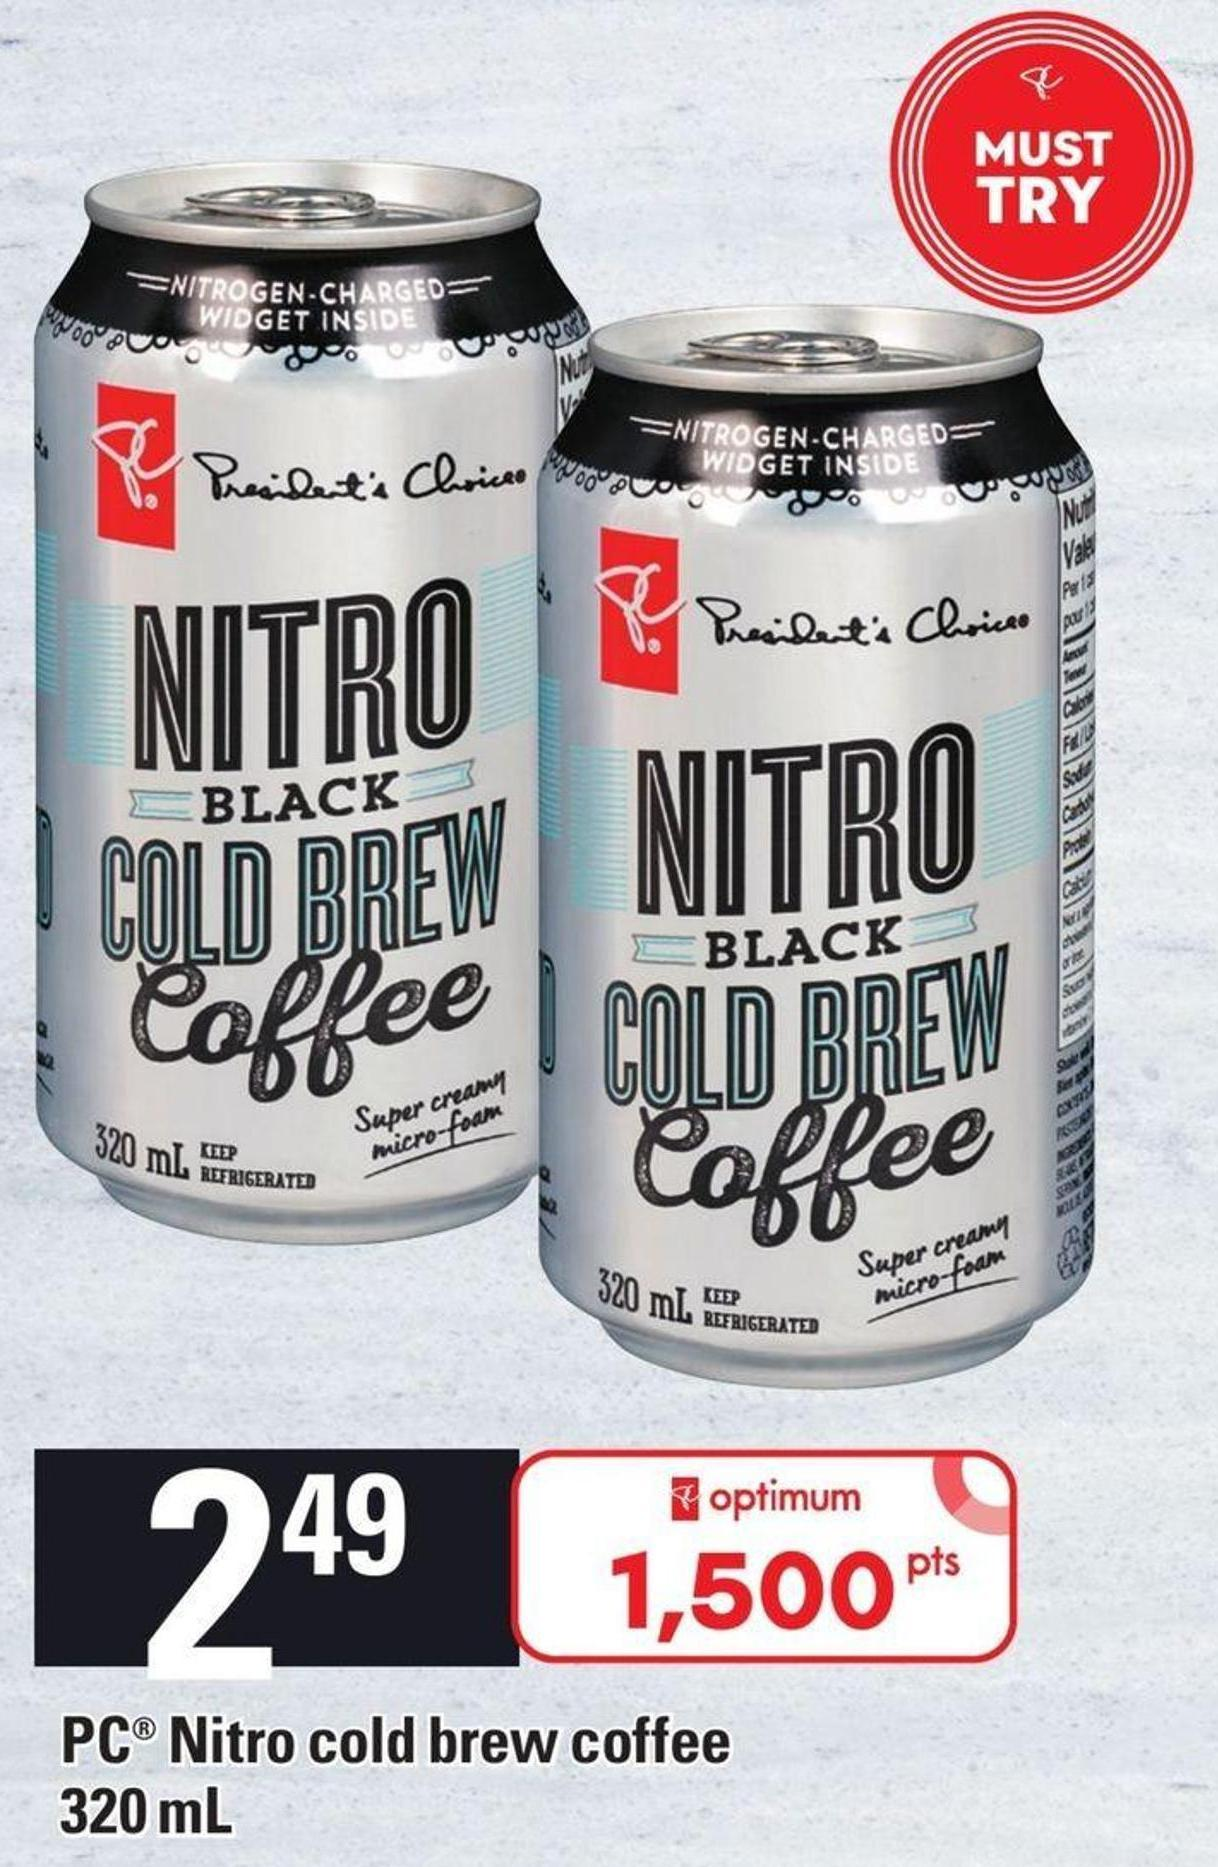 PC Nitro Cold Brew Coffee - 320 Ml